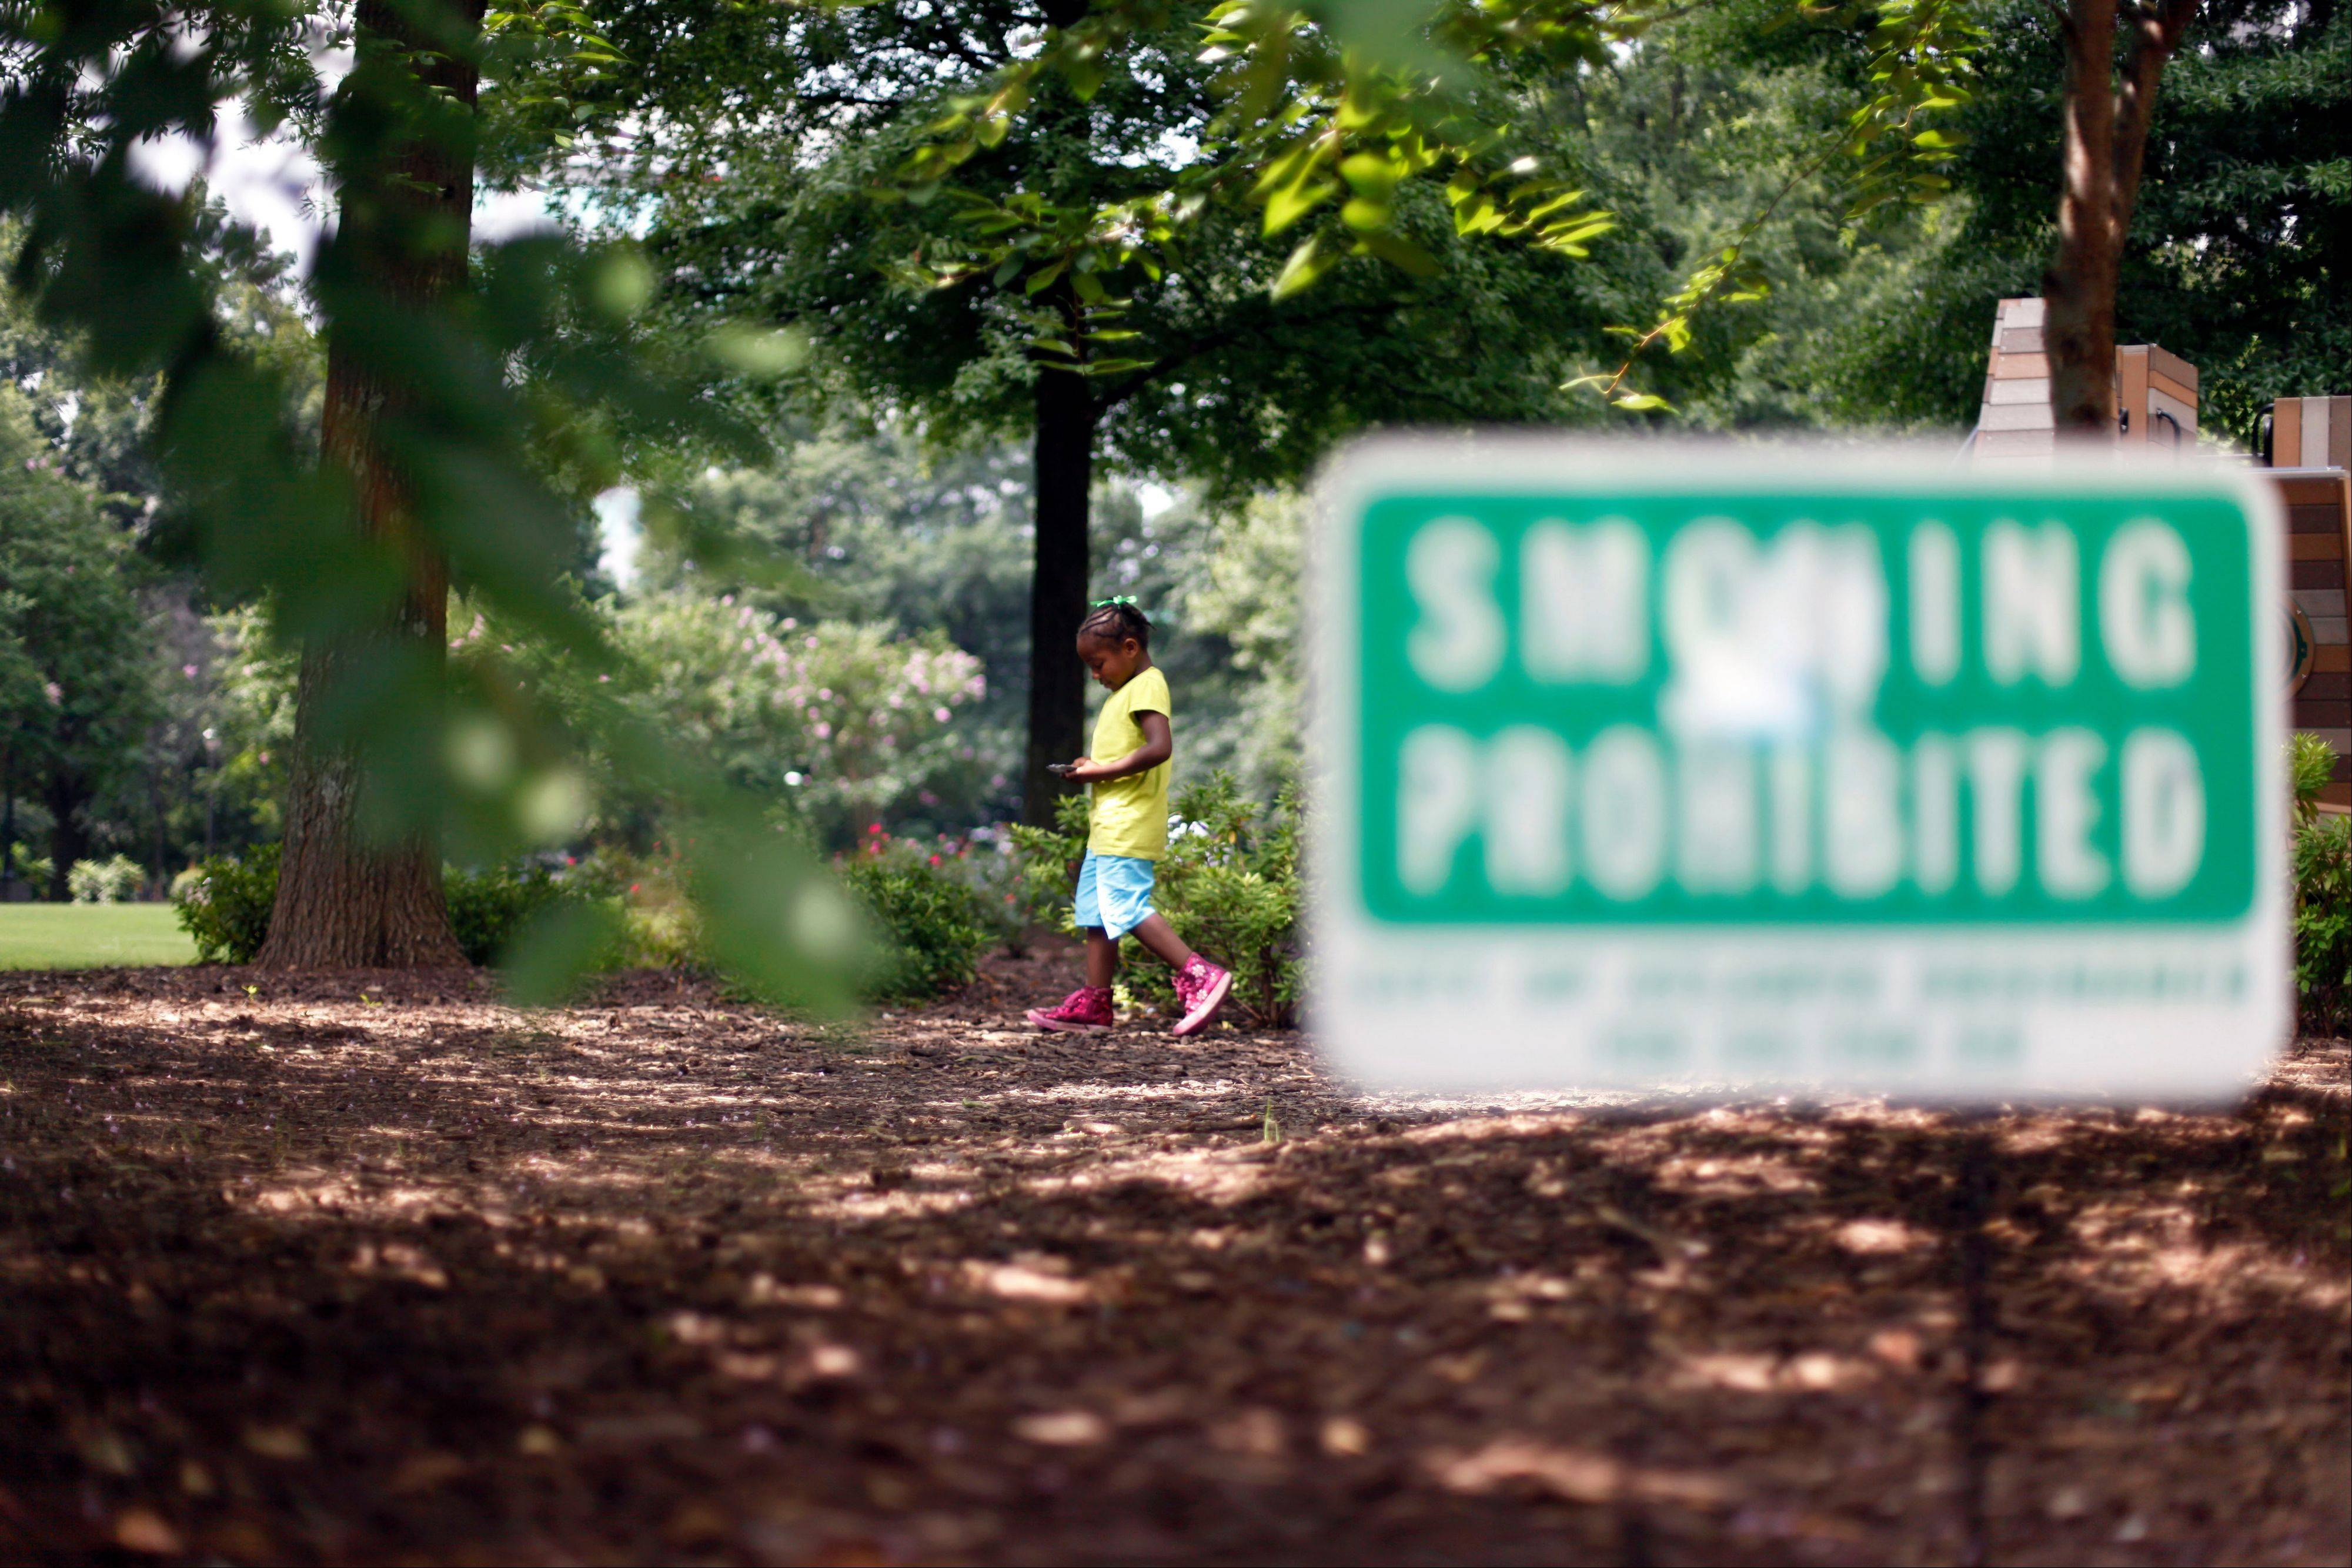 Ariayanna Stinson, 6, of Atlanta, walks around the playground next to a �smoking prohibited� sign in Woodruff Park in Atlanta. �No Smoking� signs are going up in parks, beaches and other outdoor venues across the country, but some experts are questioning whether there�s enough medical evidence to support the trend.